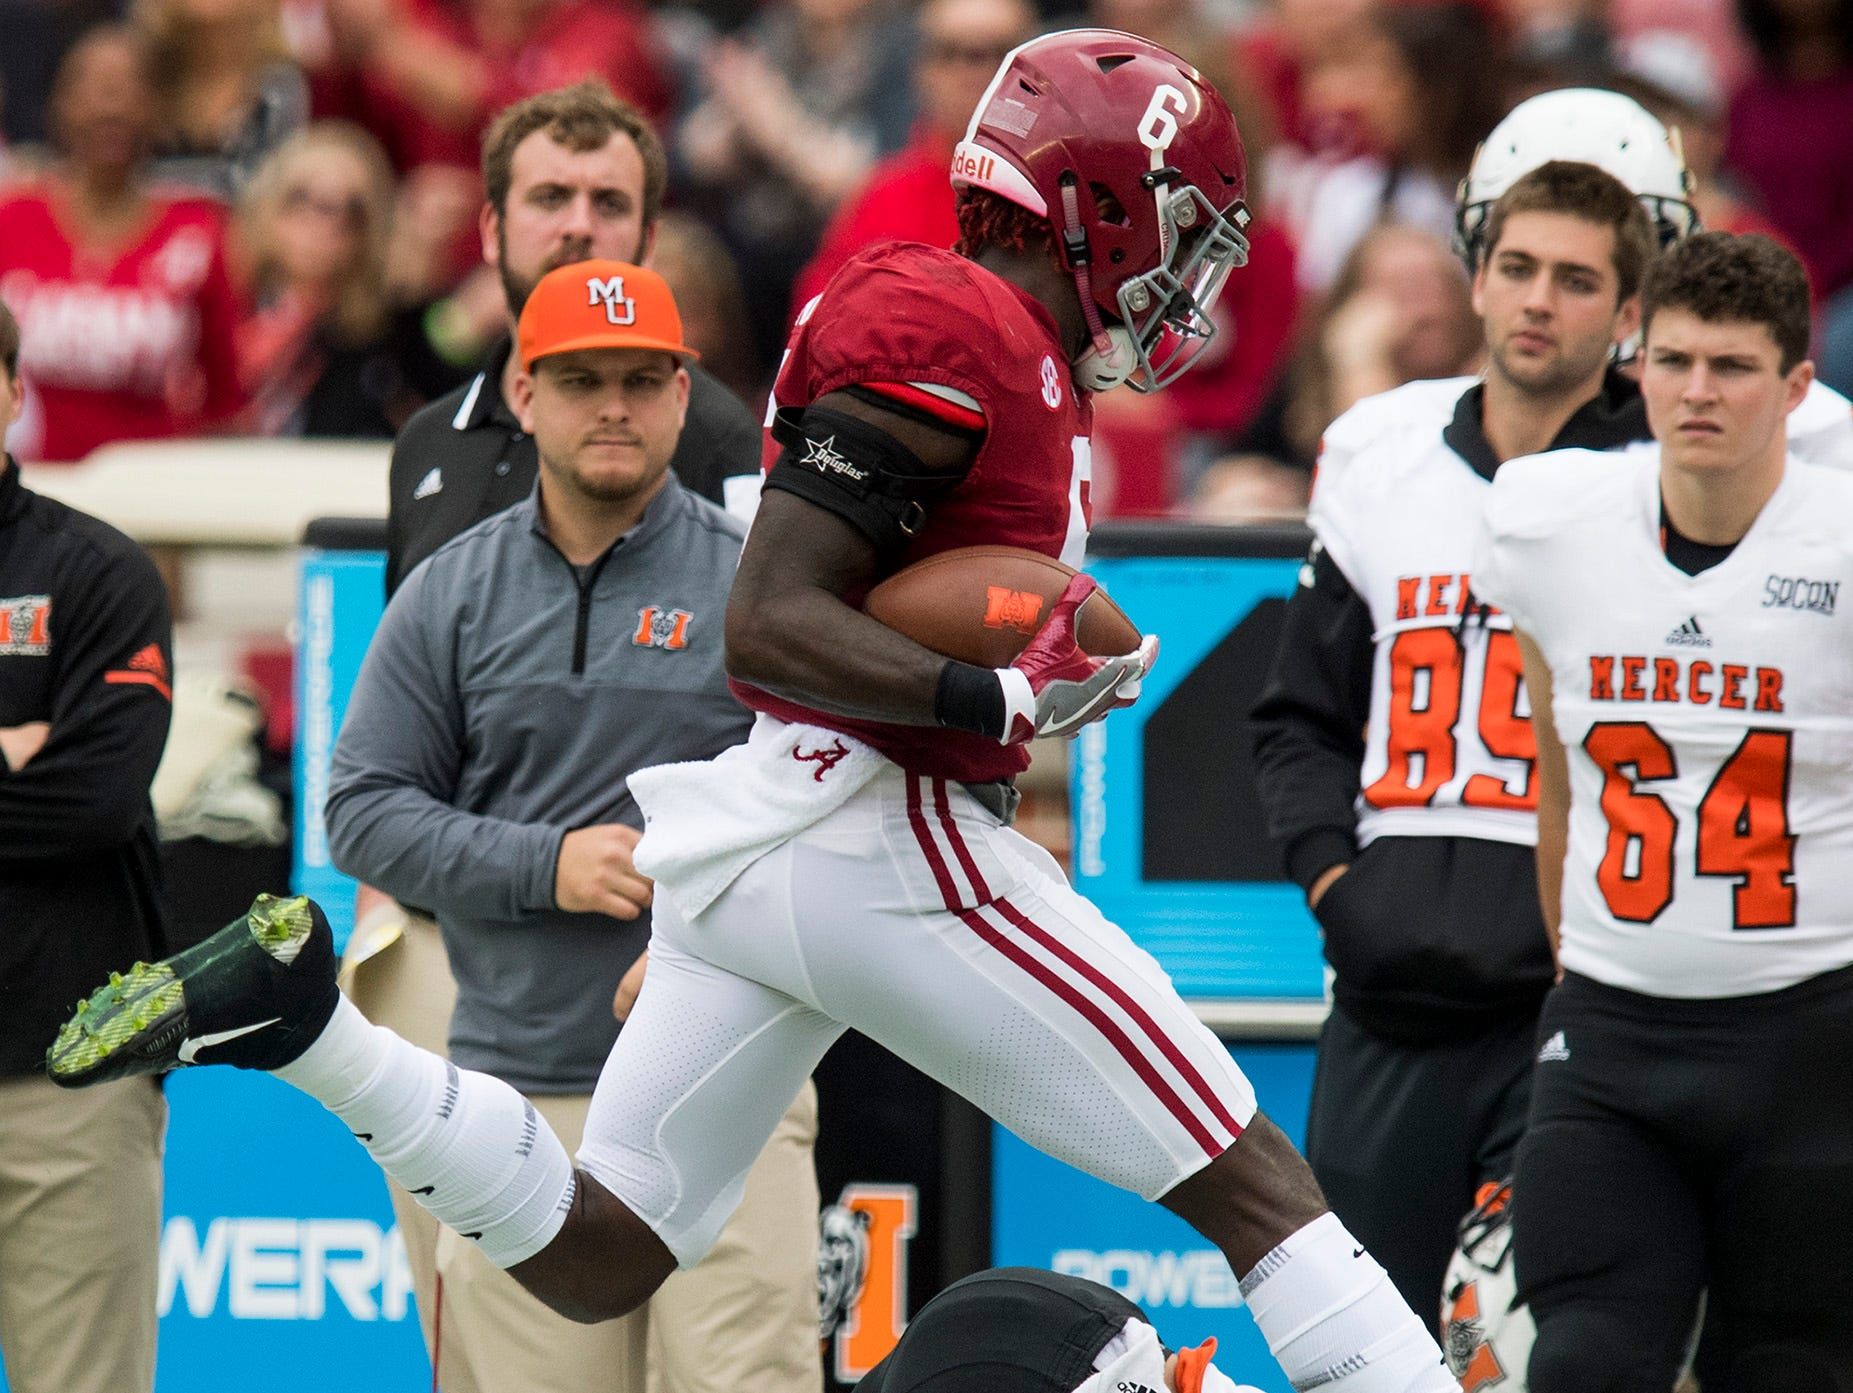 """Alabama defensive back Laurence """"Hootie"""" Jones (6) intercepts a pass against Mercer wide receiver Marquise Irvin (8) in first half action at Bryant Denny Stadium in Tuscaloosa, Ala. on Saturday November 18, 2017. (Mickey Welsh / Montgomery Advertiser)"""